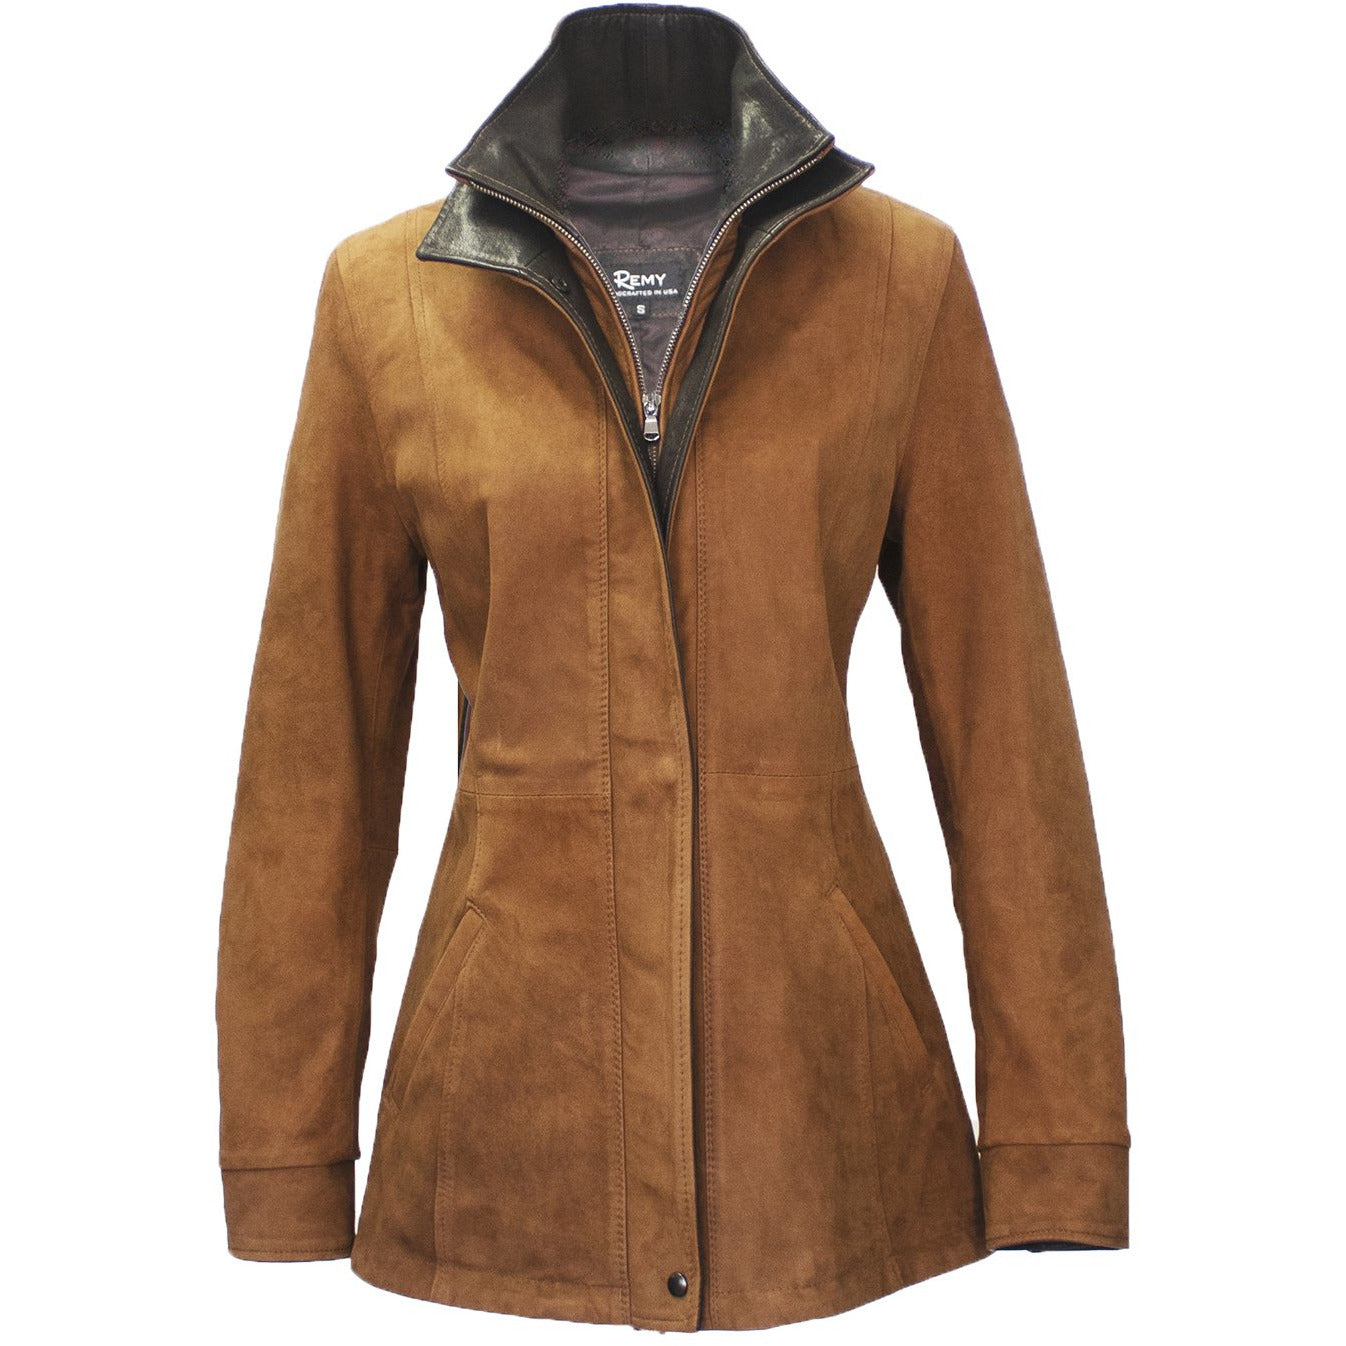 7059 - Ladies Leather Double Collar 3/4 Length Coat in Bourbon/Cocoa